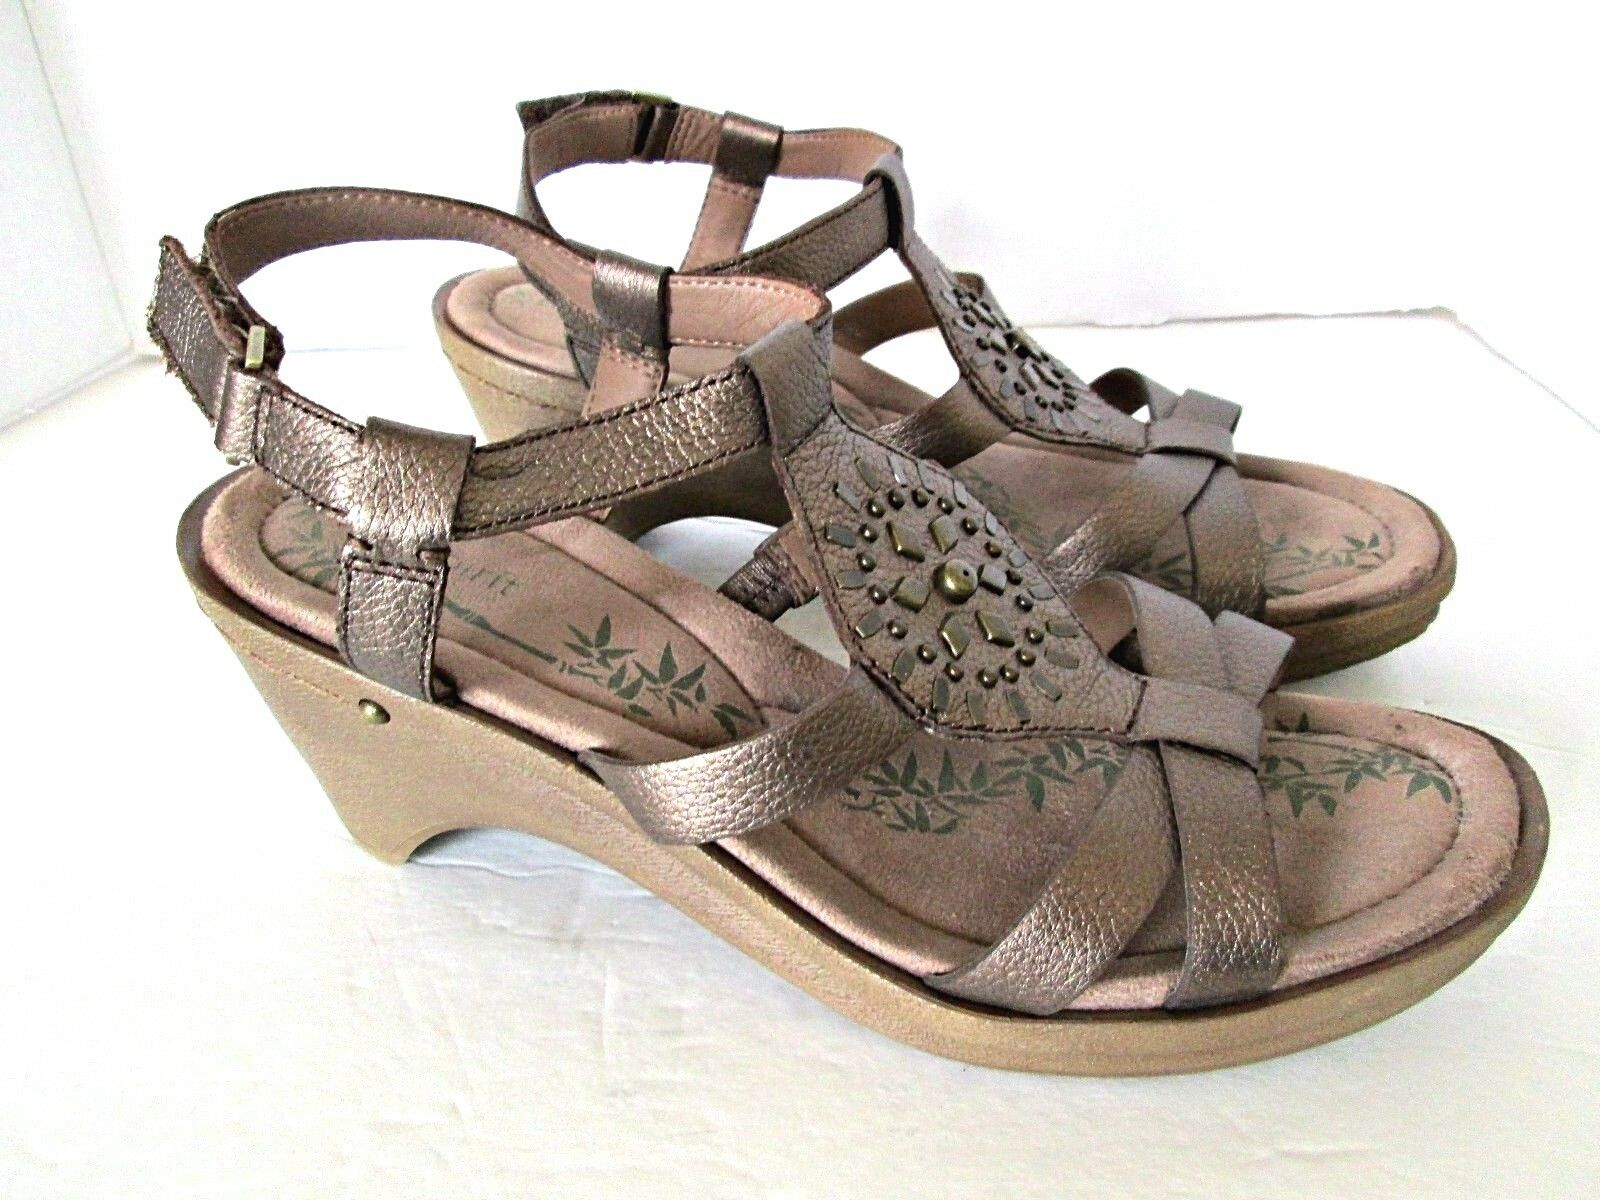 Easy Spirit shoes sandals sandals shoes heels Merryola 10M brown adjustable ankle strap women 5d2af4